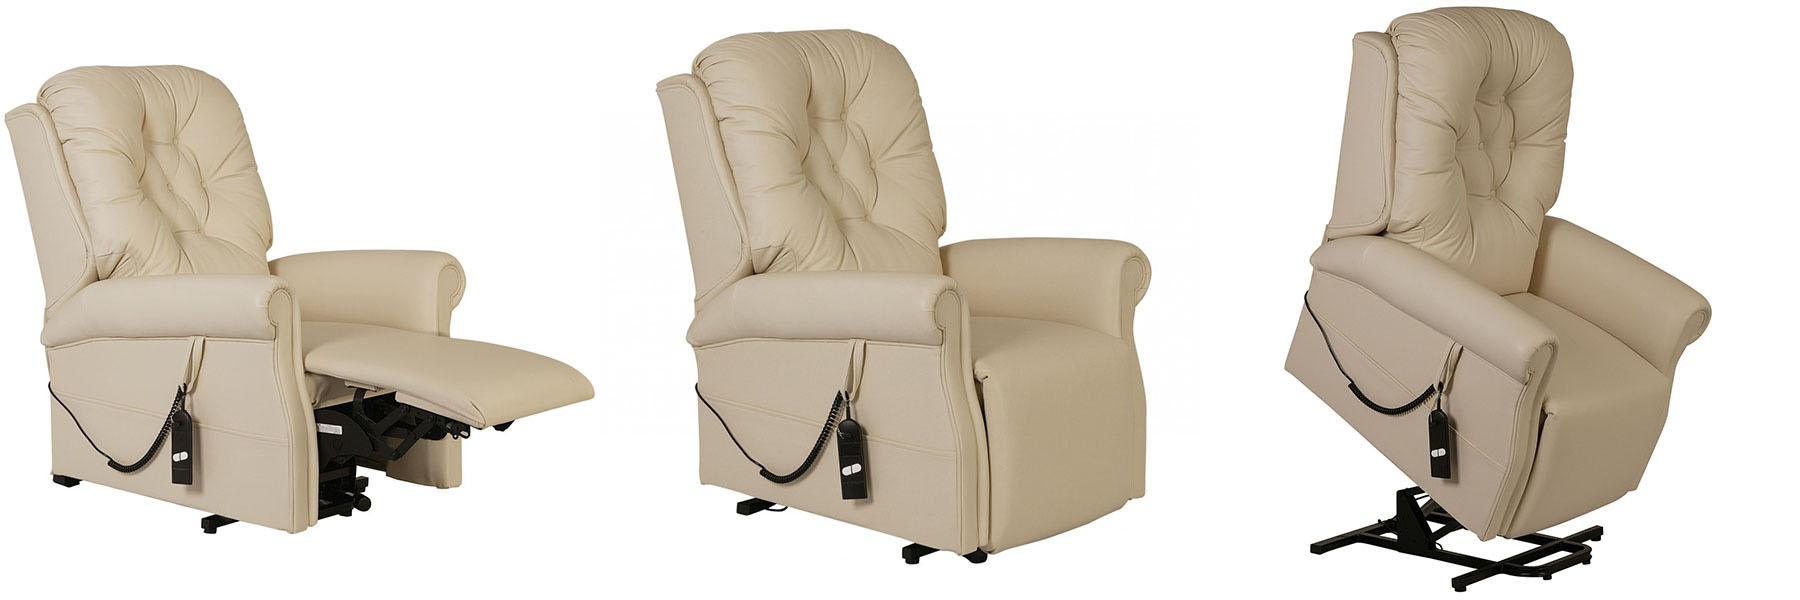 The Regal rise and recliner chair